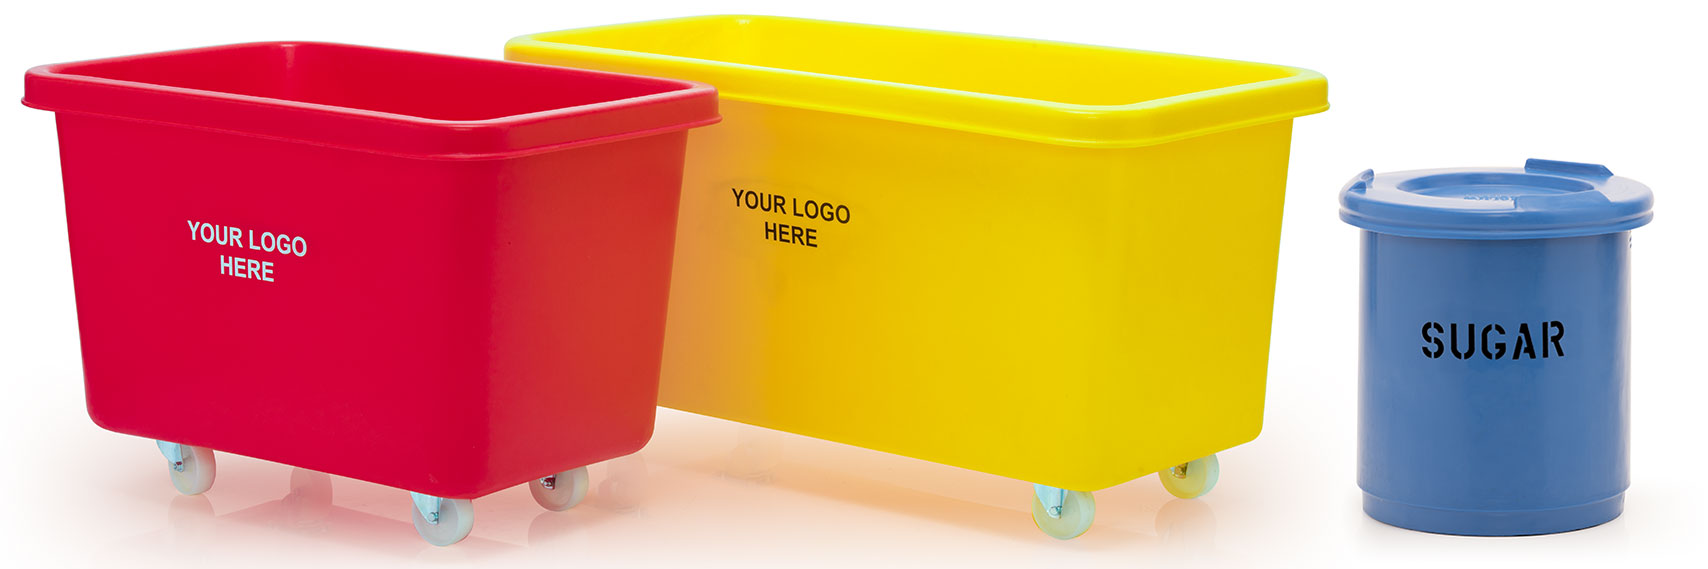 Printed-graphics-for-food-containers